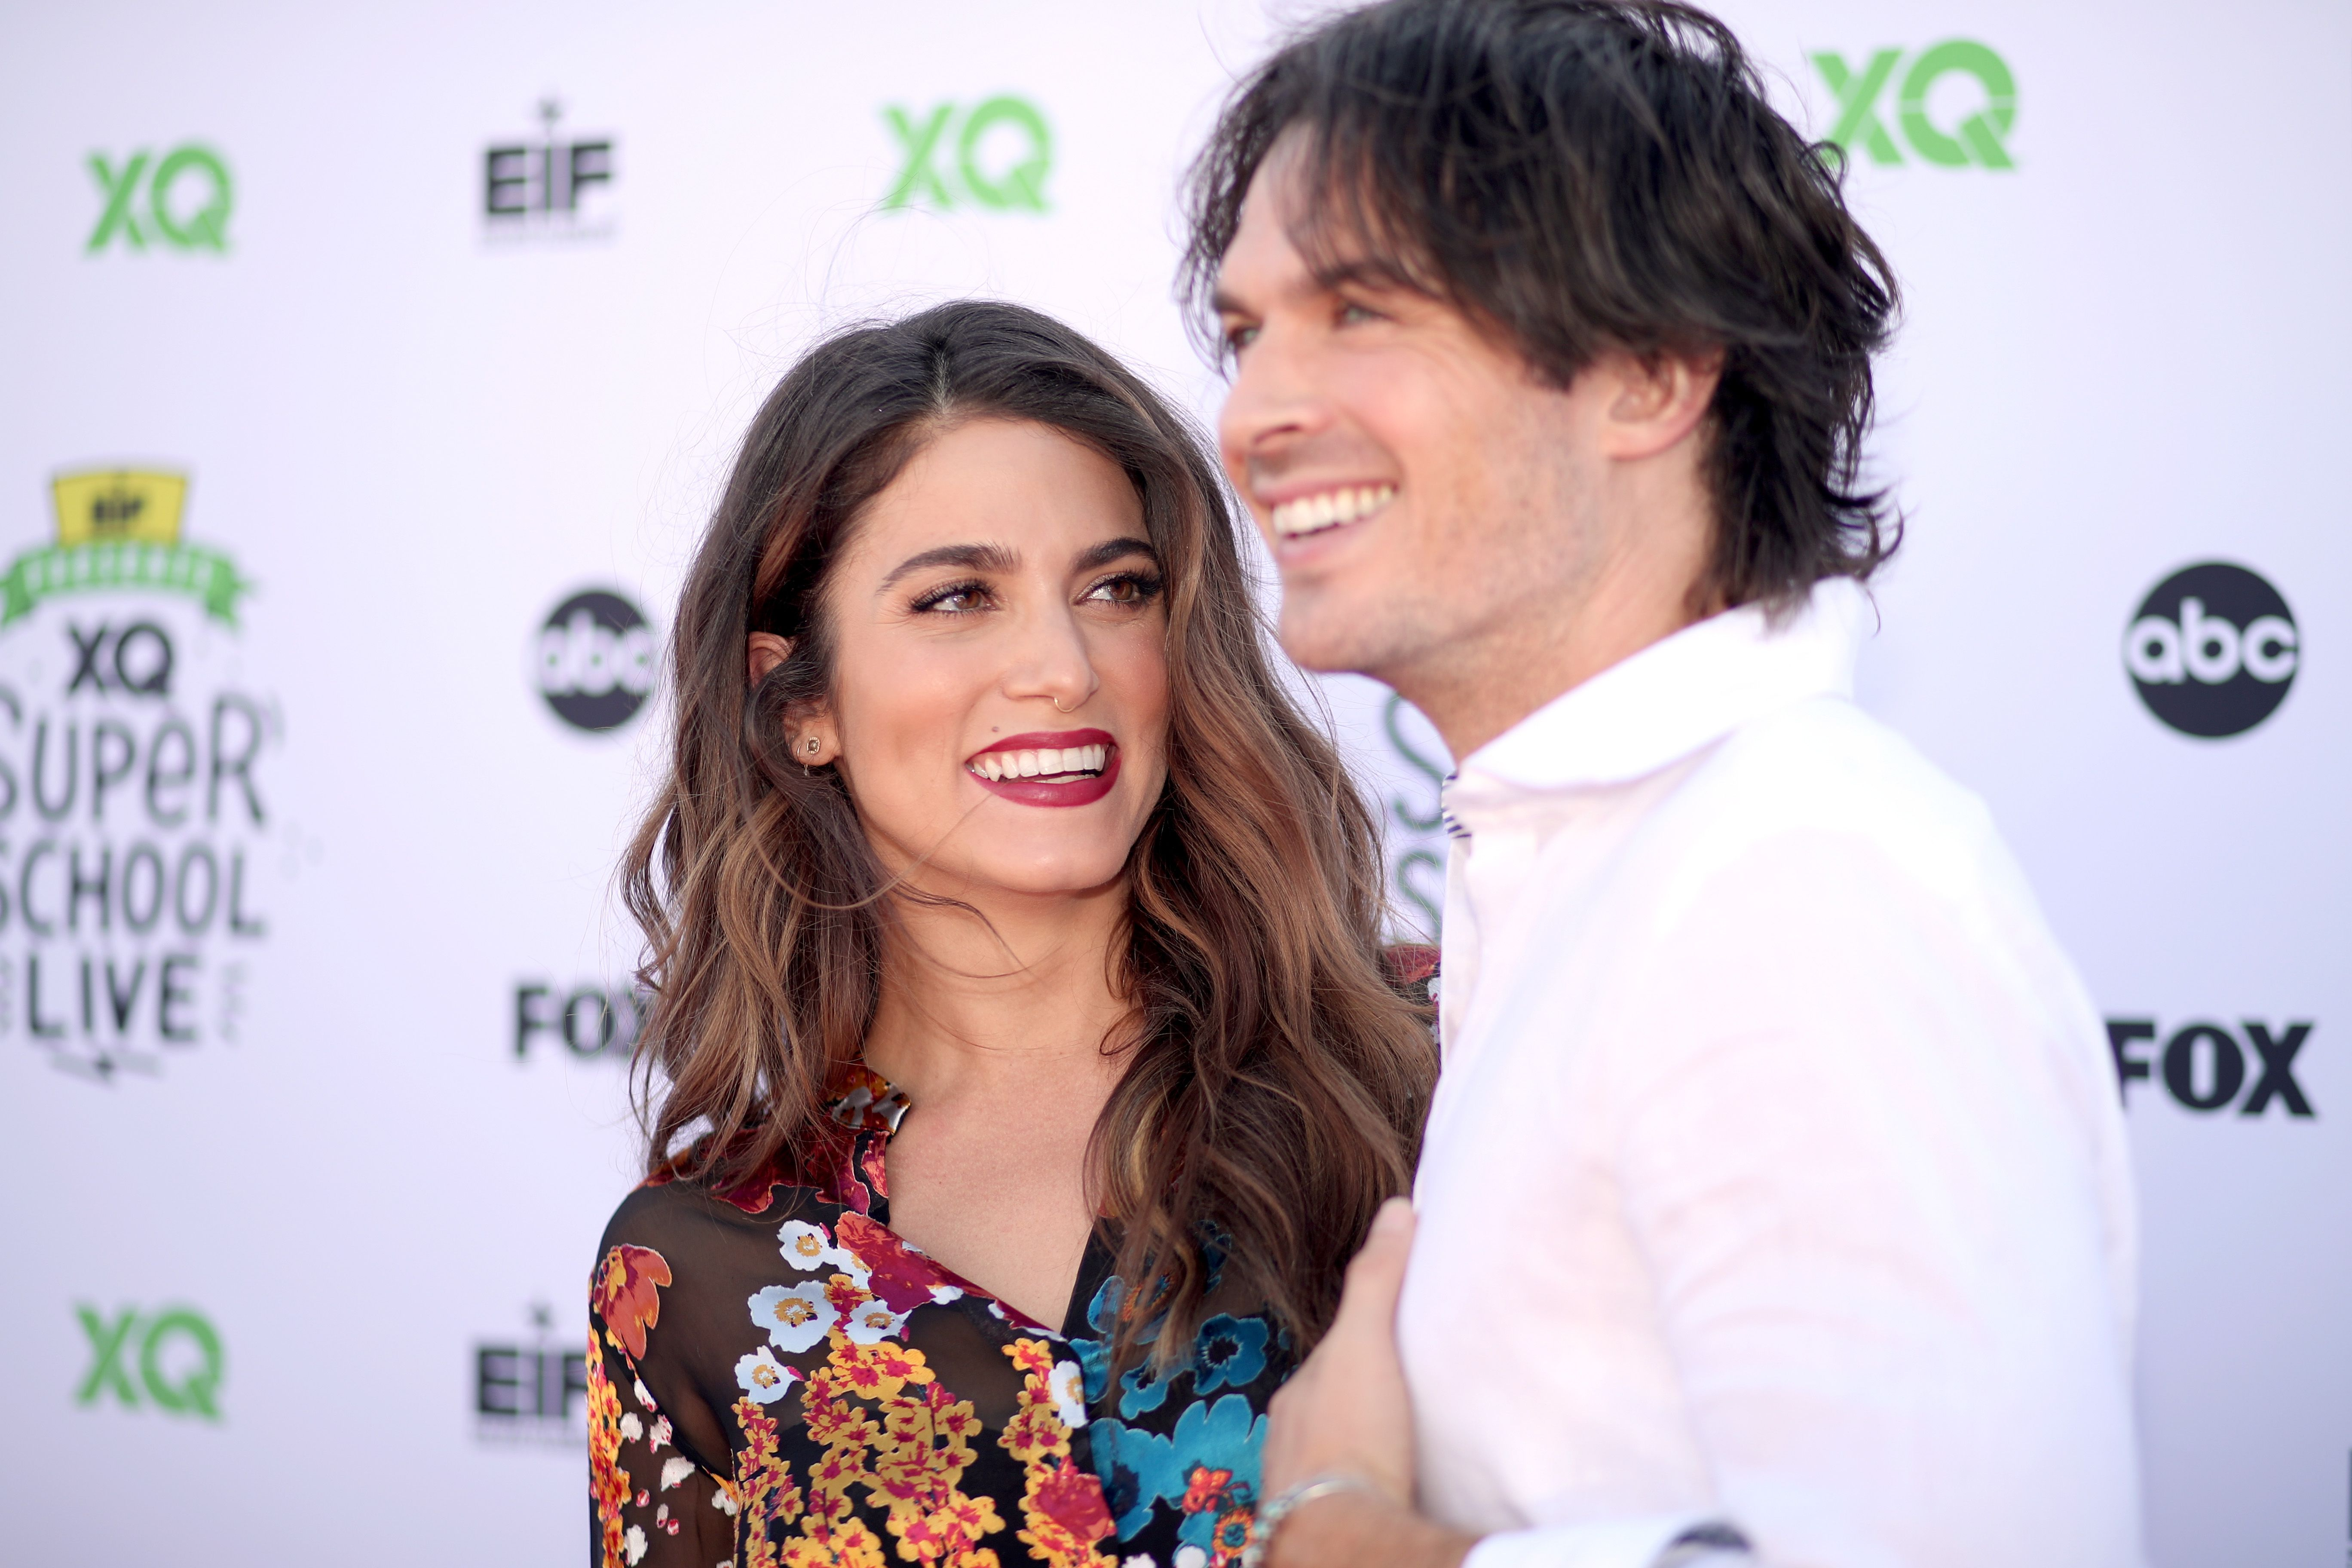 shield Ant Beforehand  Nikki Reed and Ian Somerhalder Make First Red Carpet Appearance ...